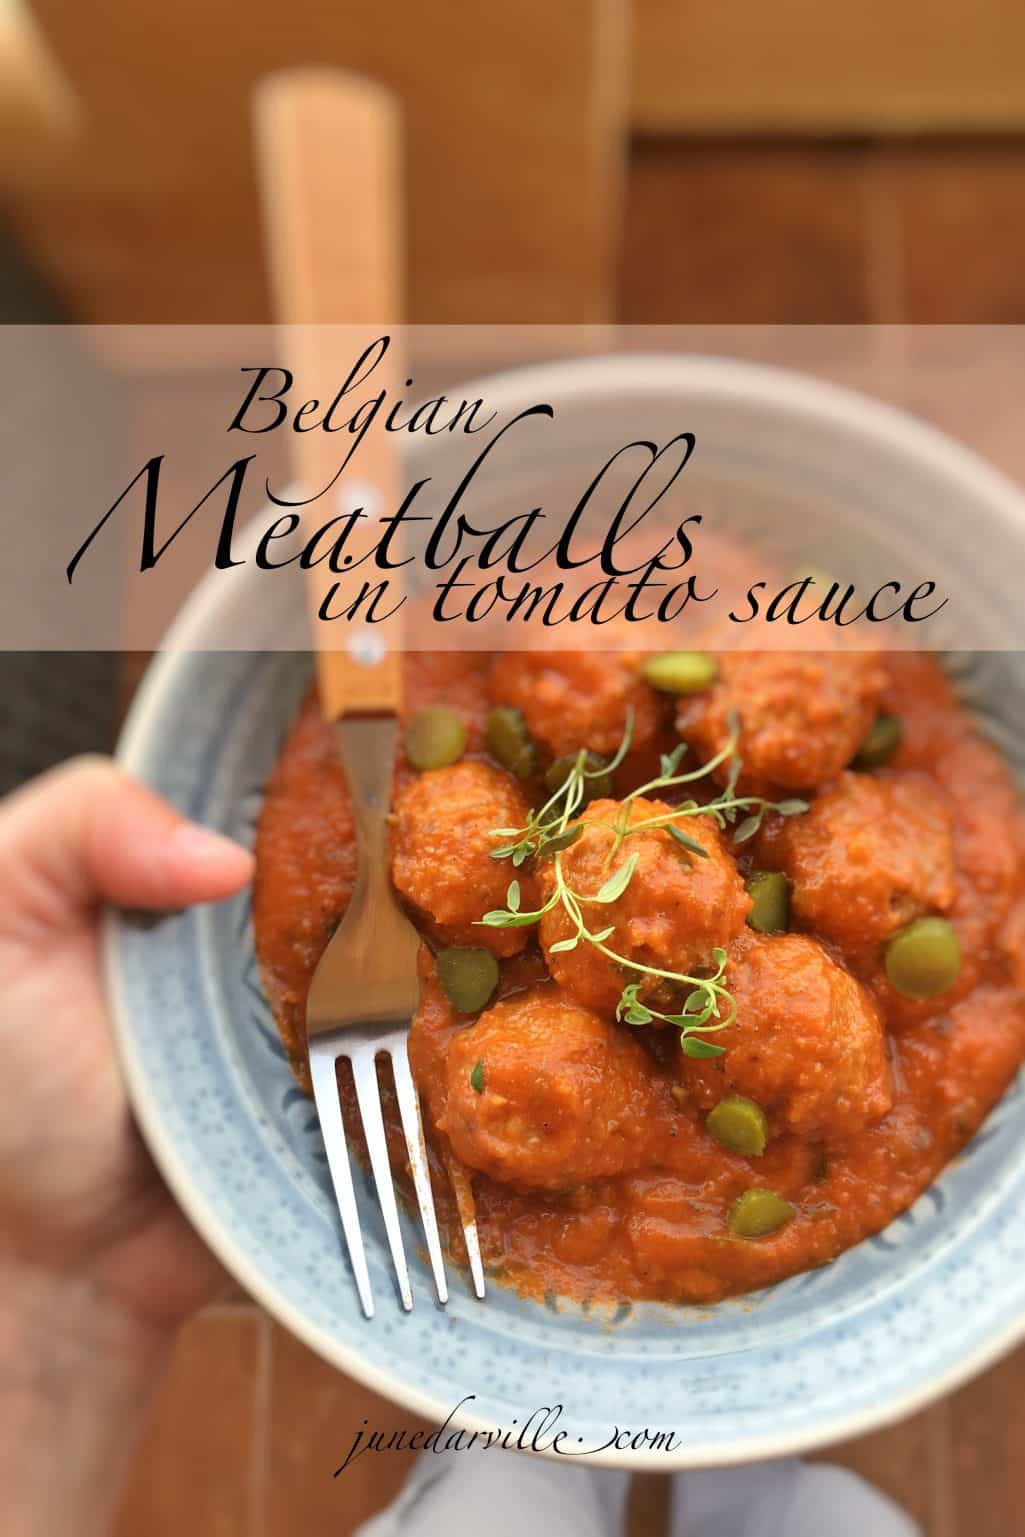 My delicious meatballs in tomato sauce recipe, a classic Belgian dish prepared my style! This is the perfect meatball dinner!